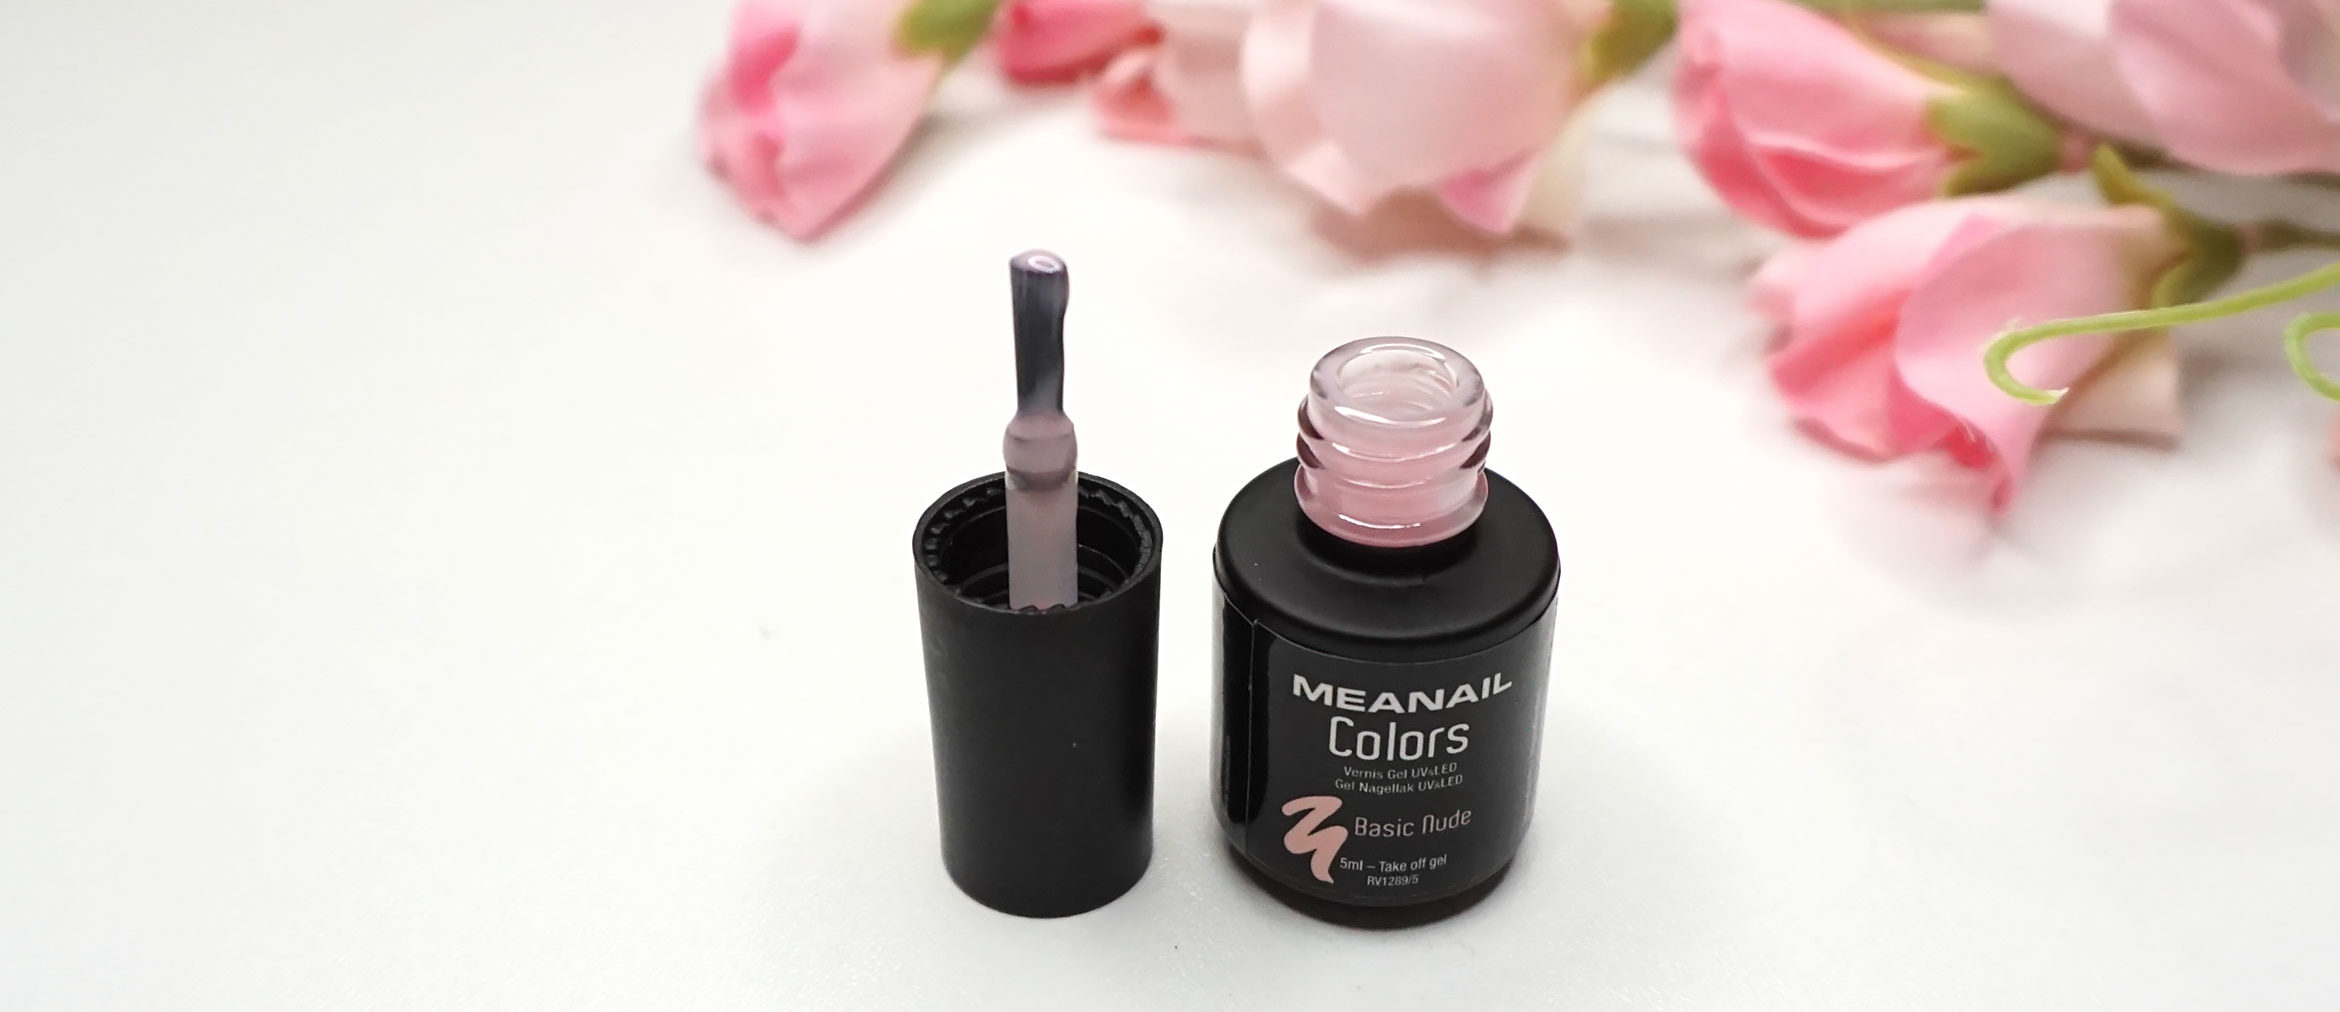 Meanail-starterset-review-basic-nude